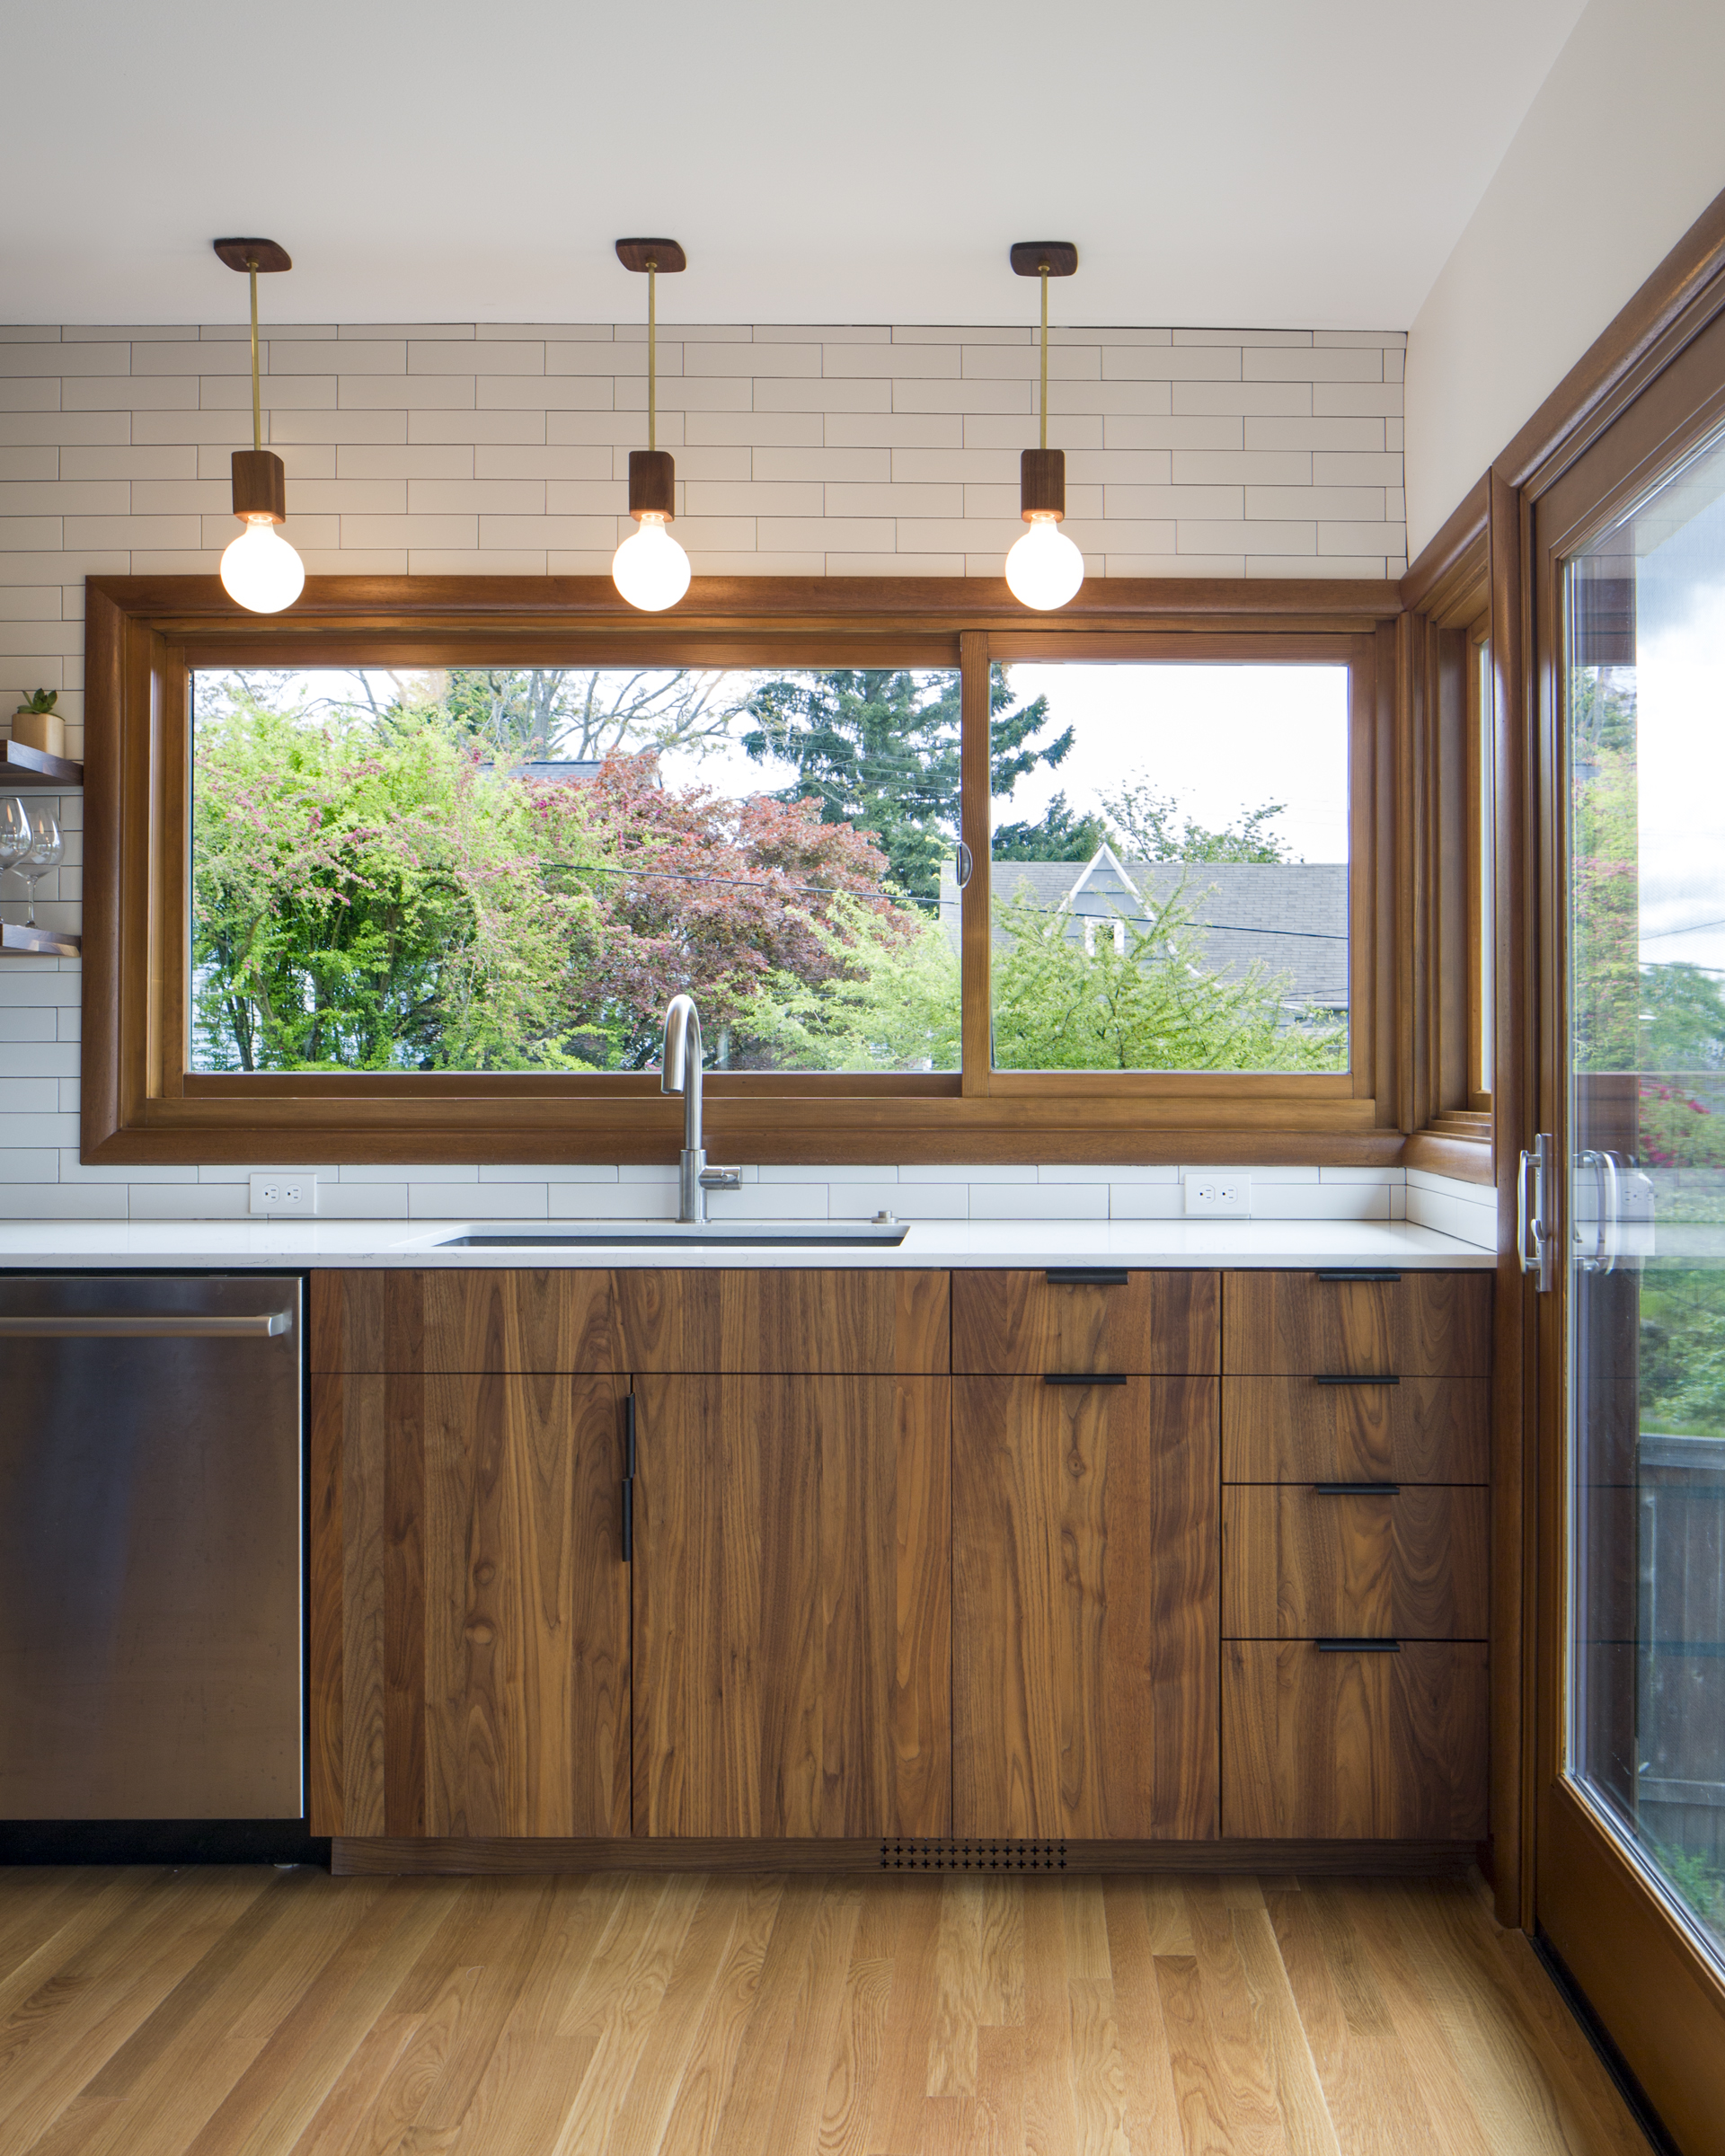 Wood windows over a sink in the kitchen home remodel